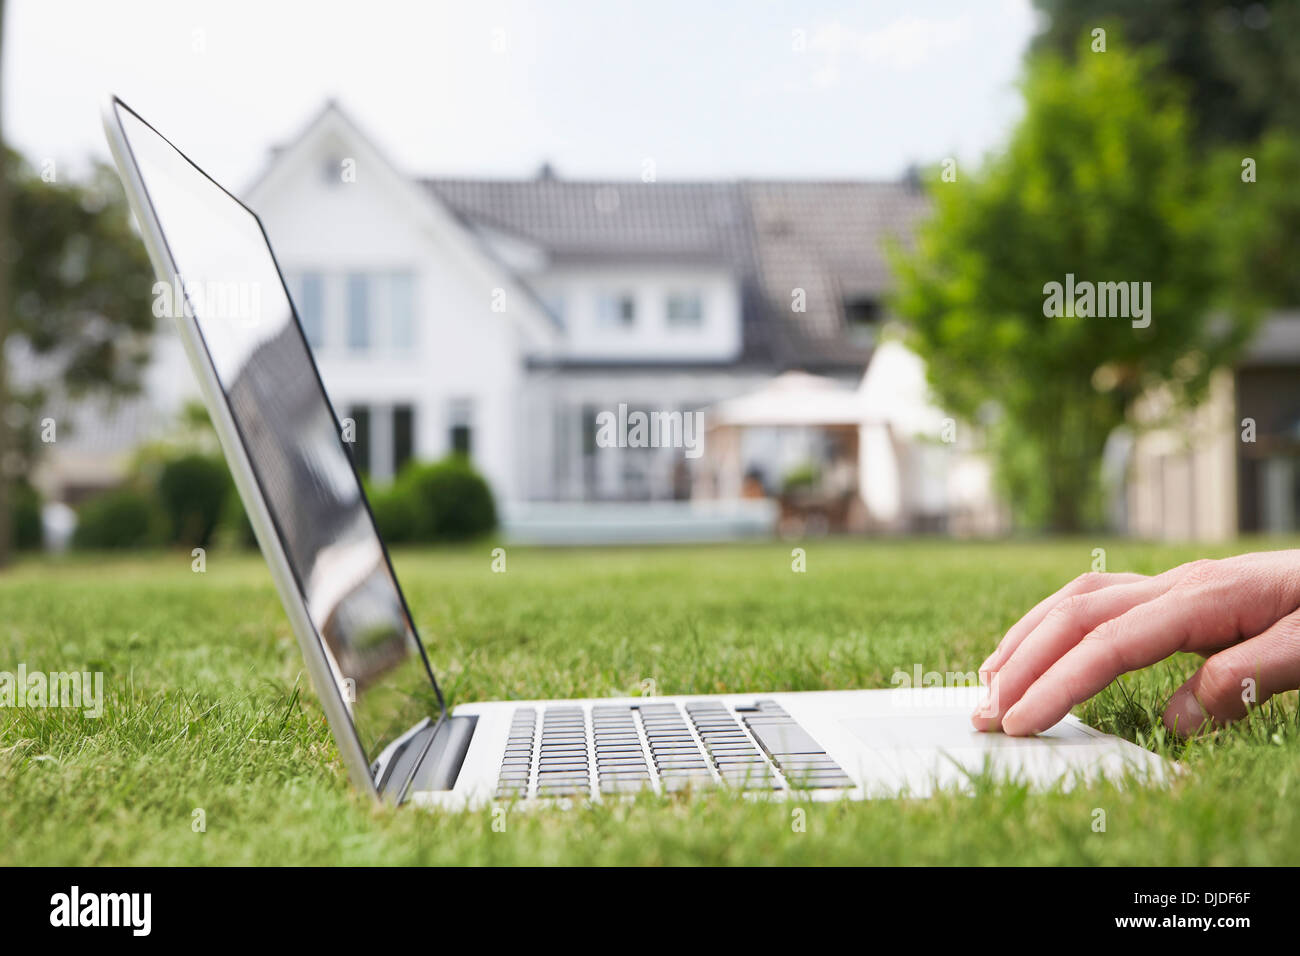 Germany, Cologne, Man using laptop in garden - Stock Image